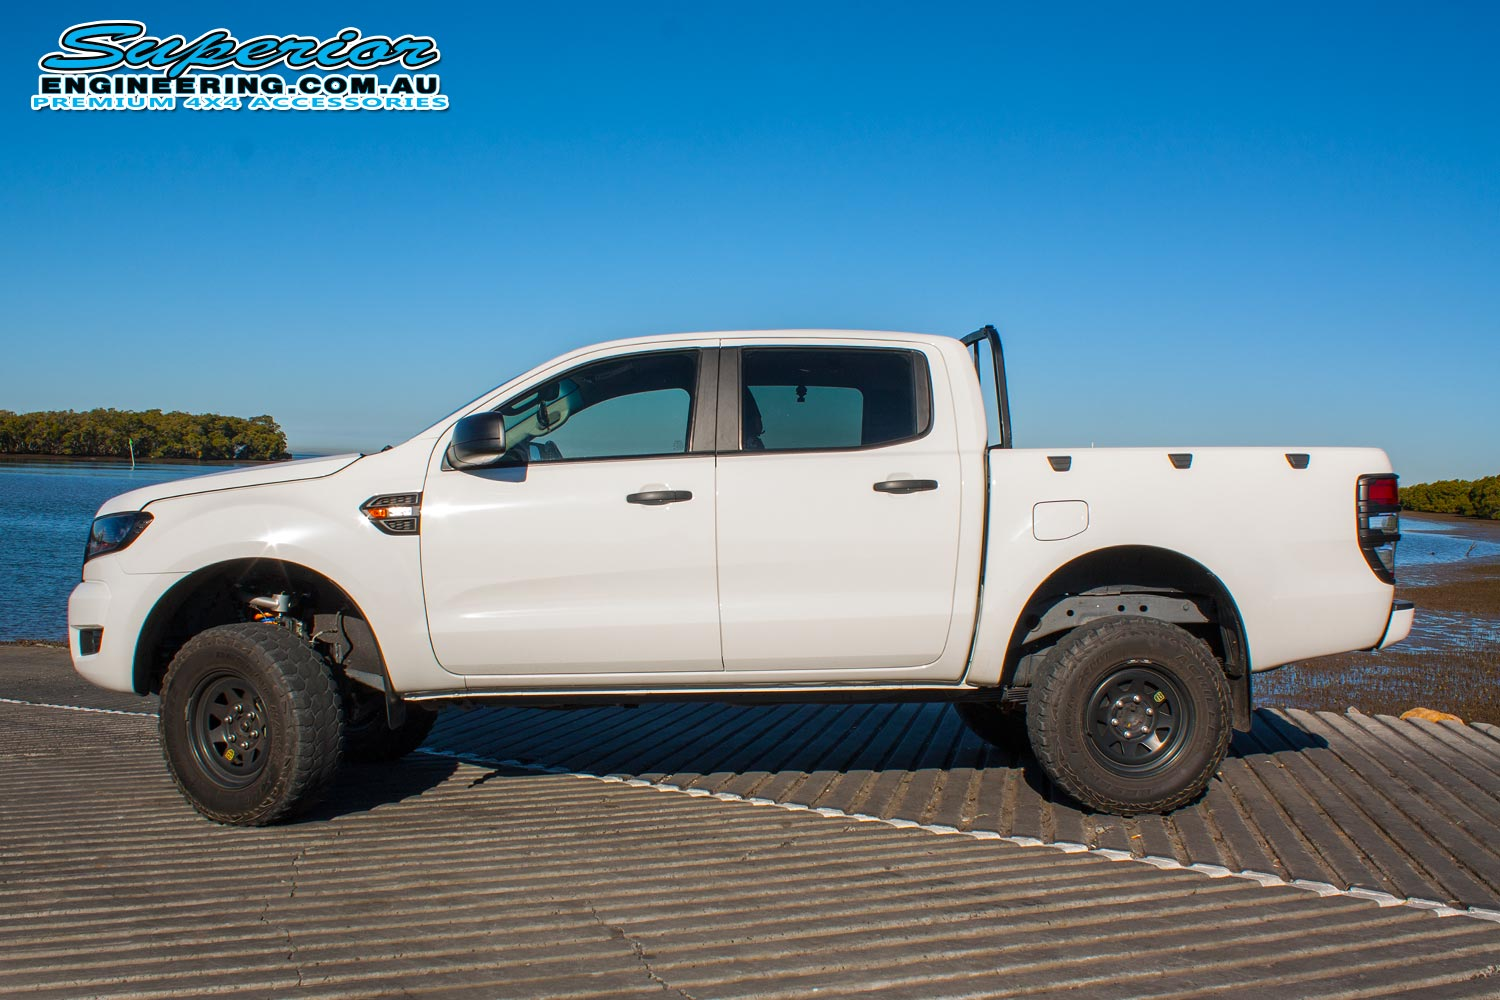 Left side view of a white Ford Ranger PX after being fitted with a 3 inch Superior Nitro Gas lift kit at the Superior Engineering Burpengary workshop